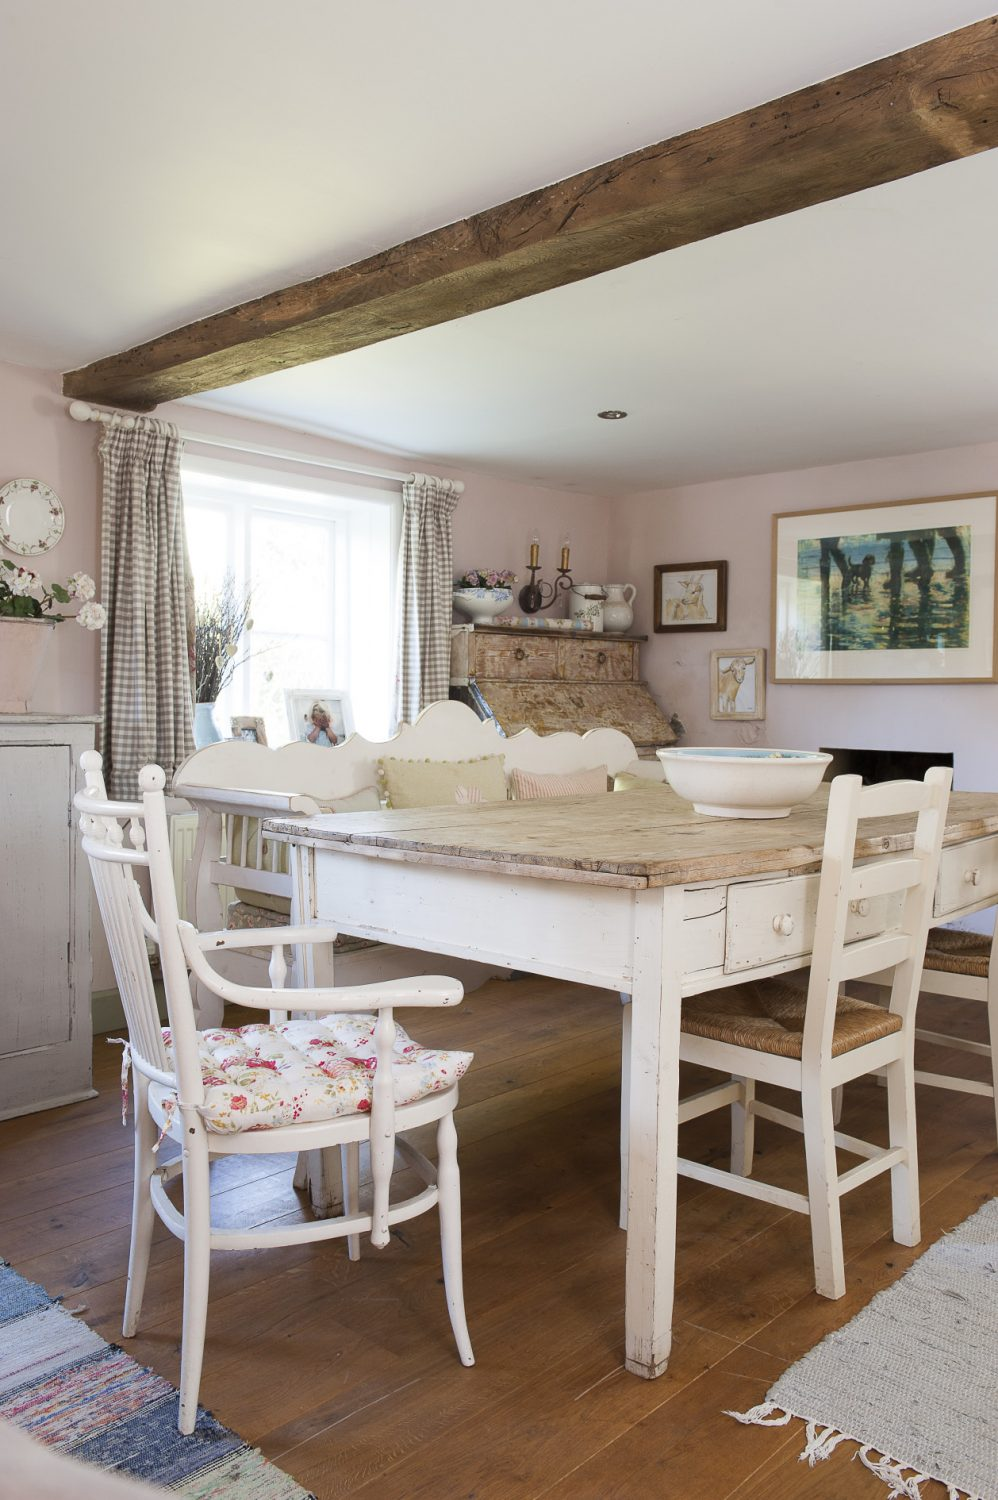 Caroline is a regular visitor to the Ardingly antiques market, where she bought this large, French-style farmhouse table and other accessories that decorate the large living area at the front of the house